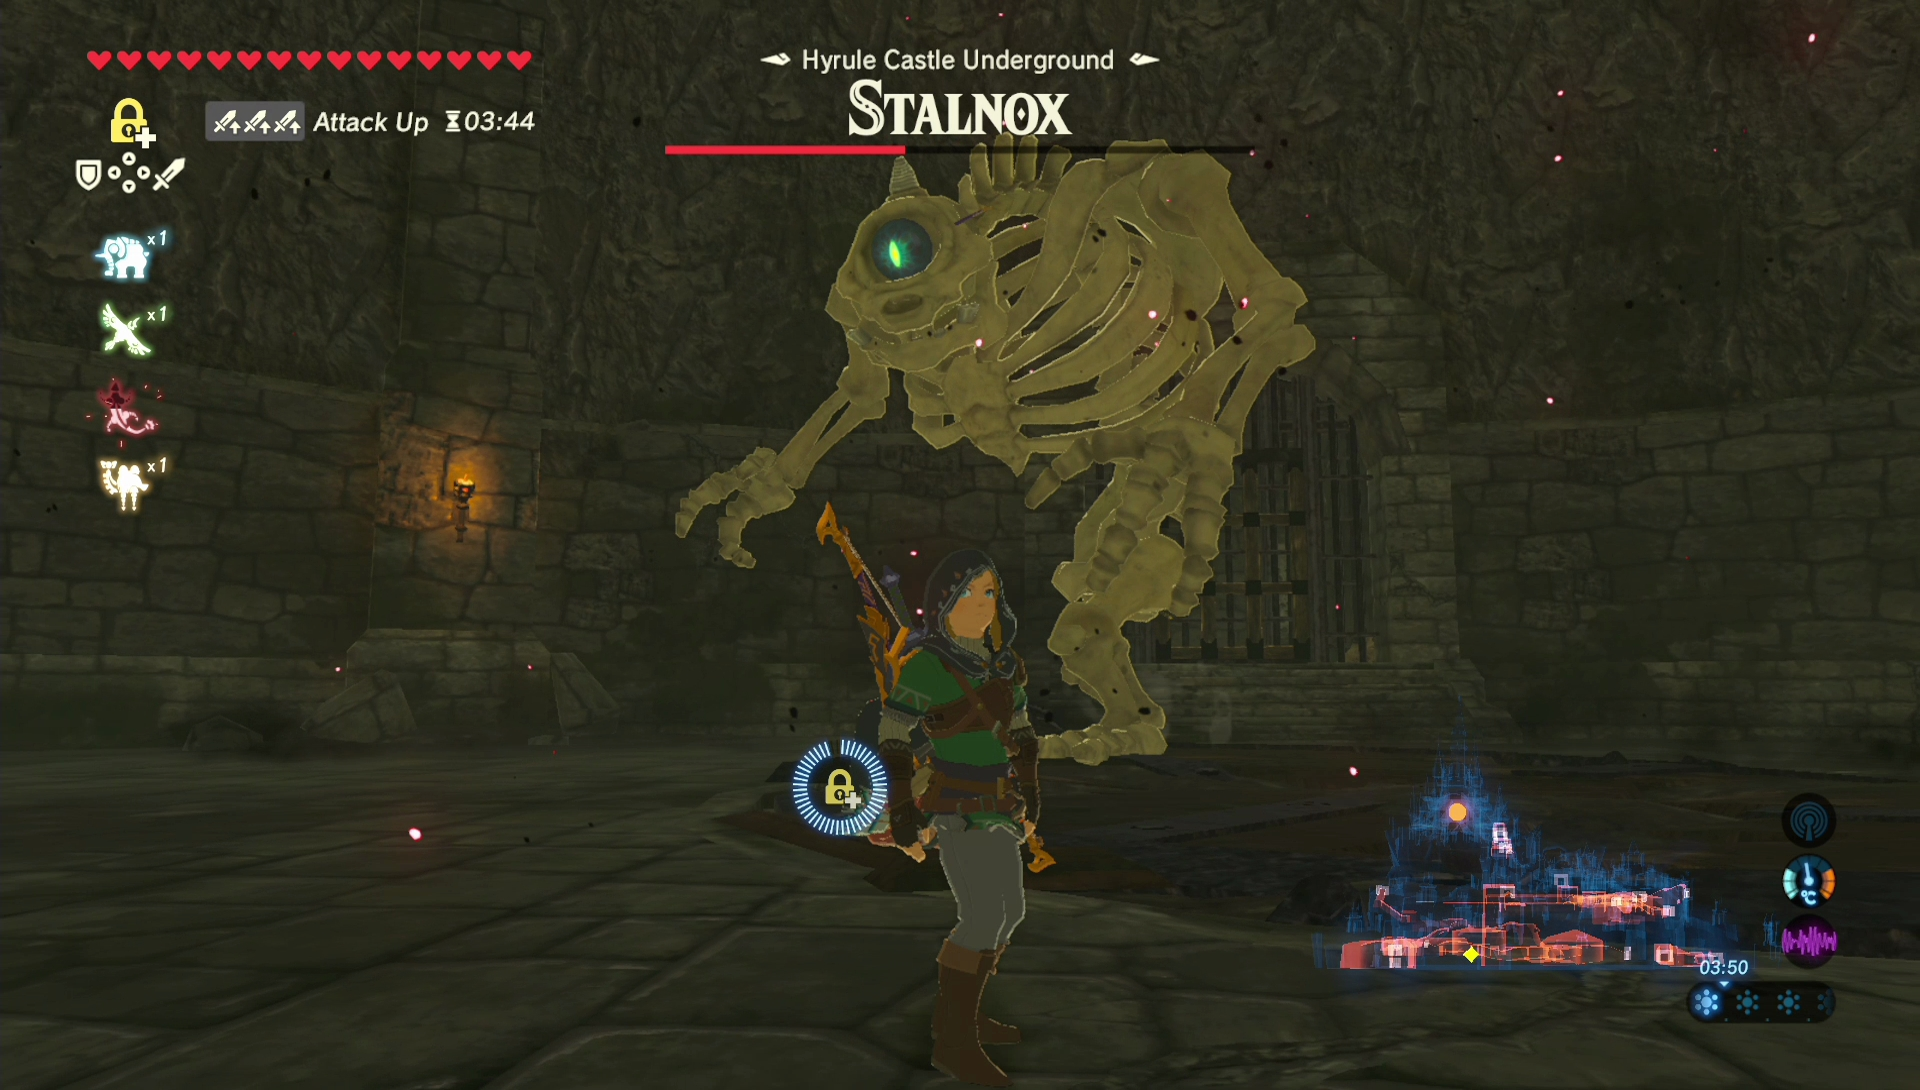 The Legend Of Zelda Breath Of The Wild Guide How To Get The Hylian Shield The Best Shield In The Game Rpg Site